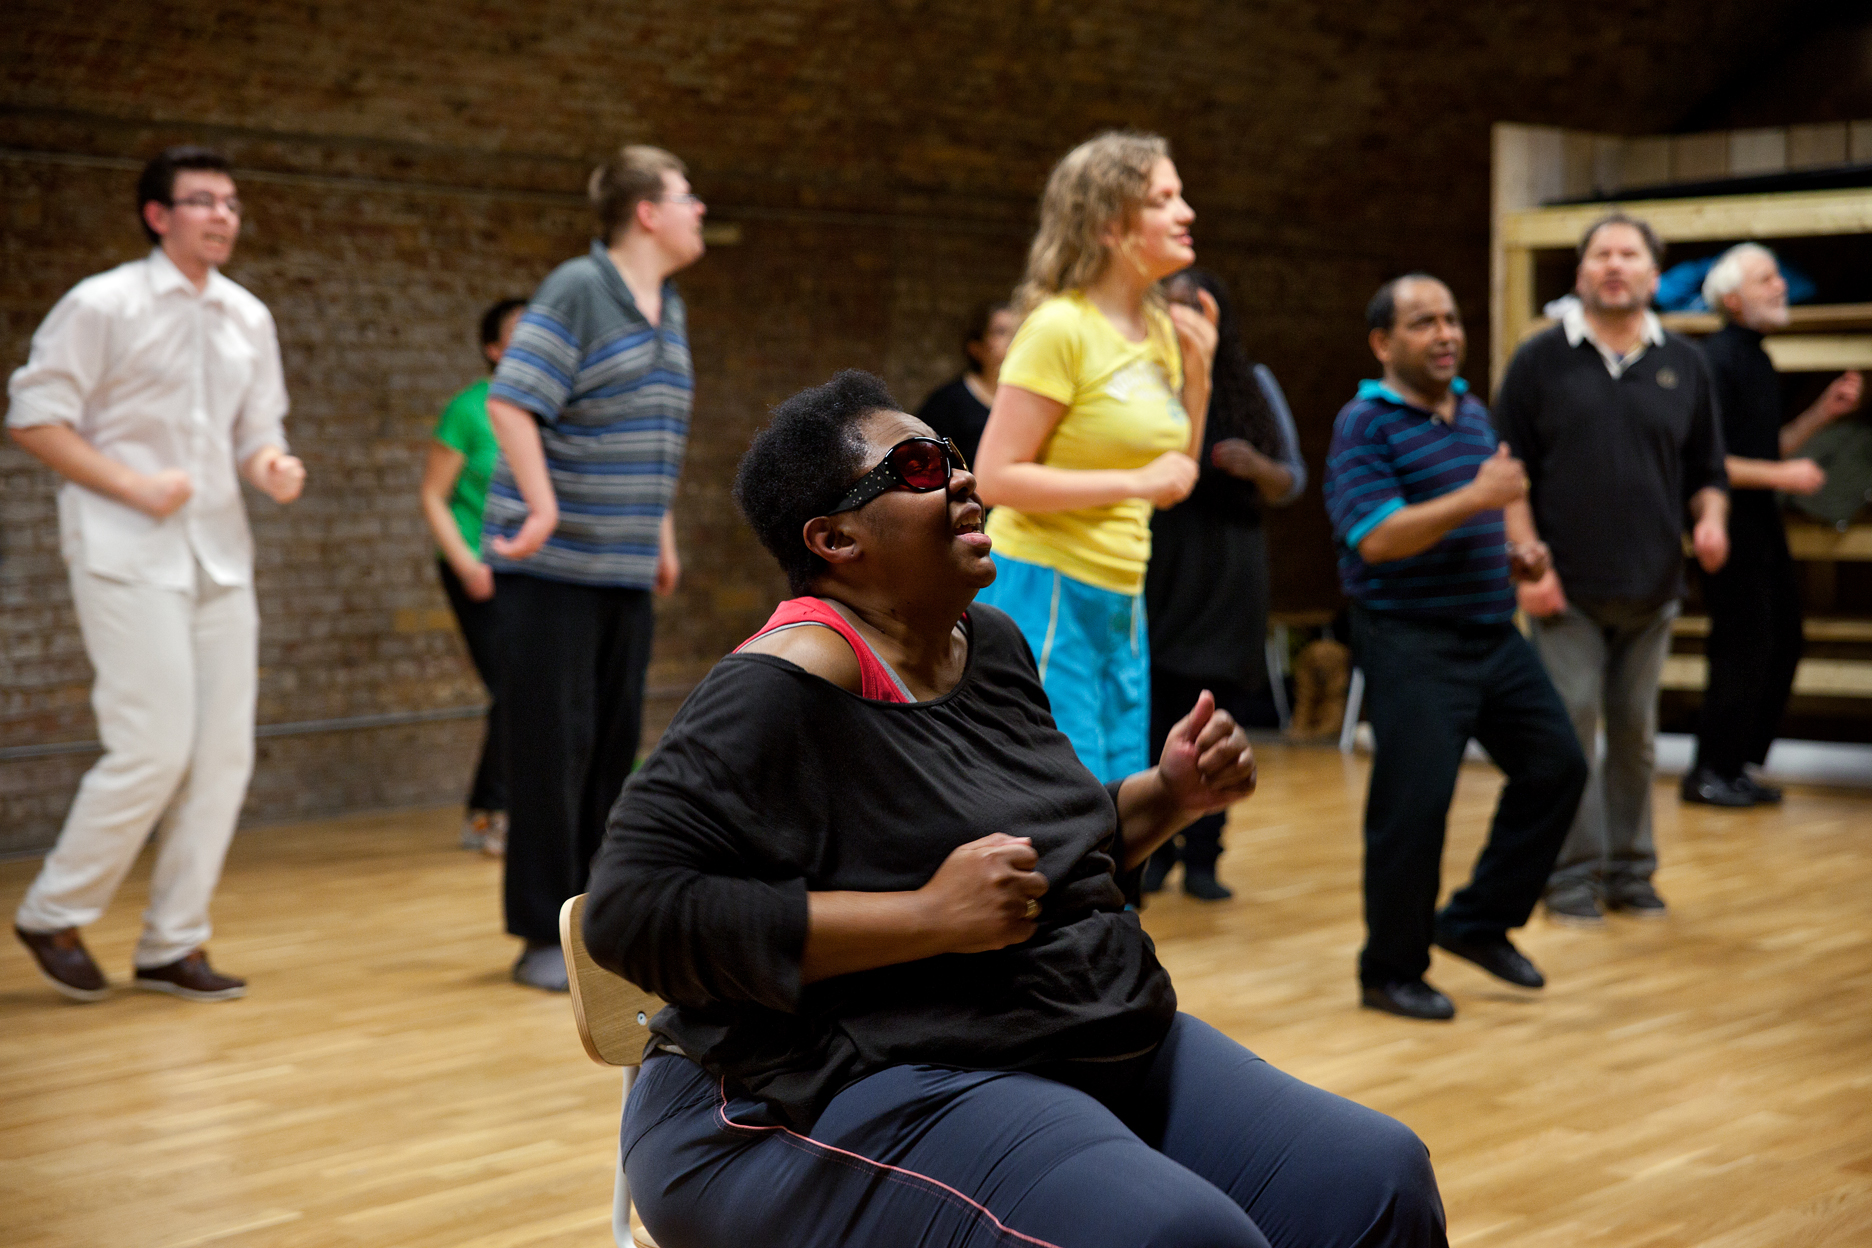 A visually impaired black woman wearing tinted glasses sits in a centre of a rehearsal room, arms in right angle motion. A group of visually impaired participants are dance behind her.